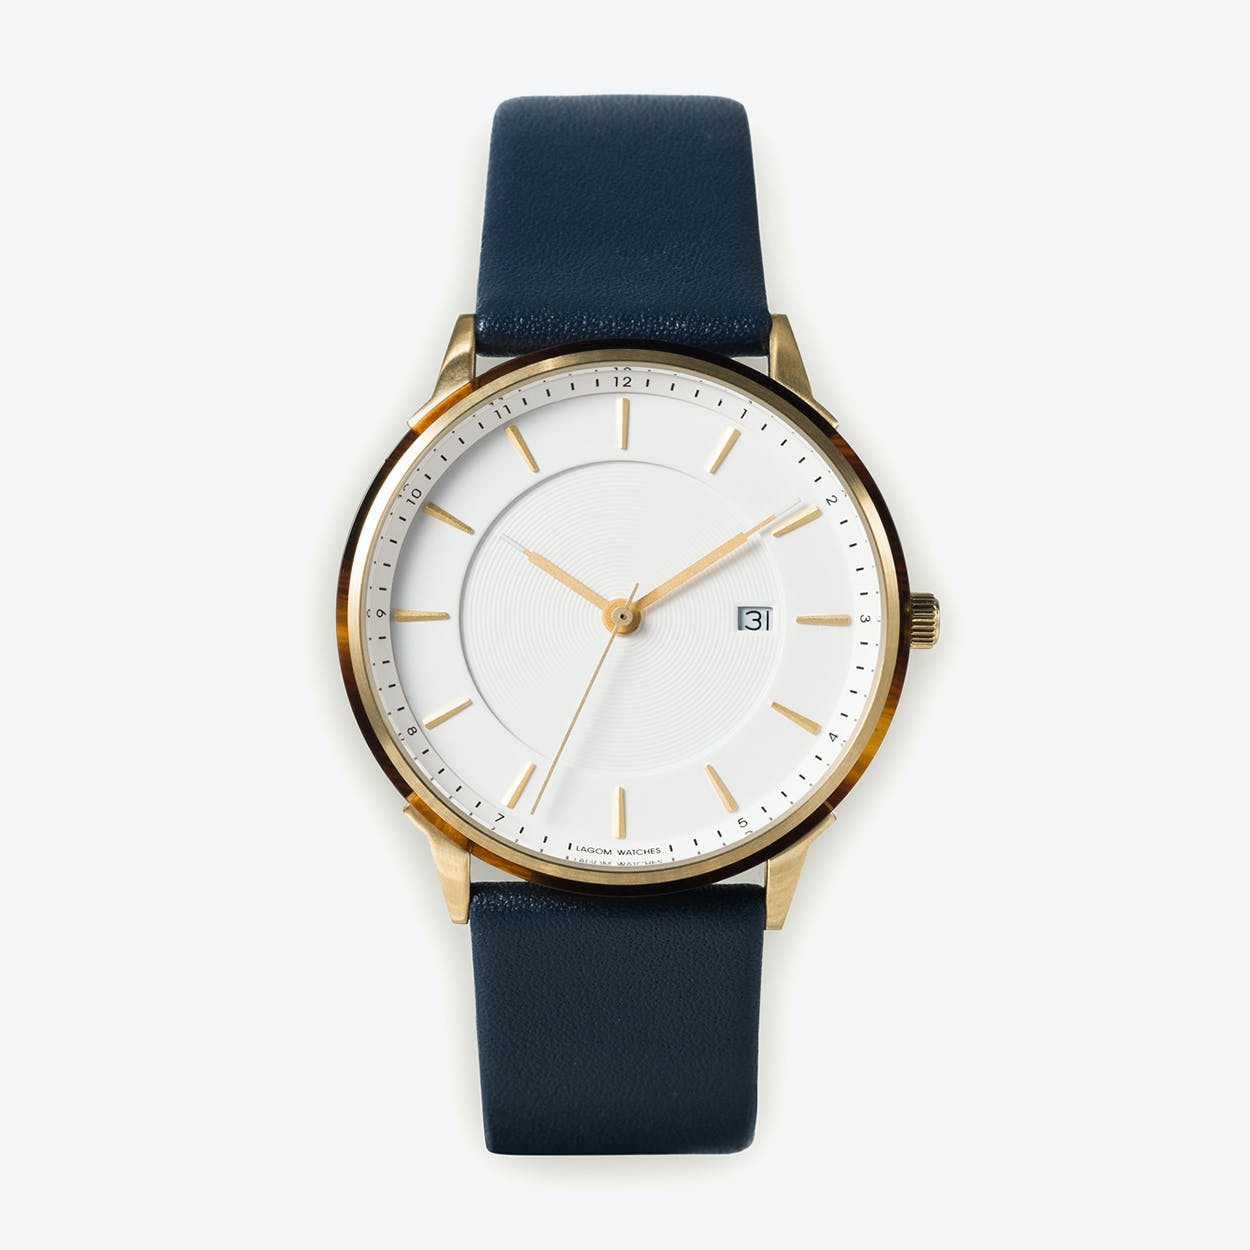 BÖRJA - Gold Watch in Offwhite Face and Navy Blue Leather Stripe